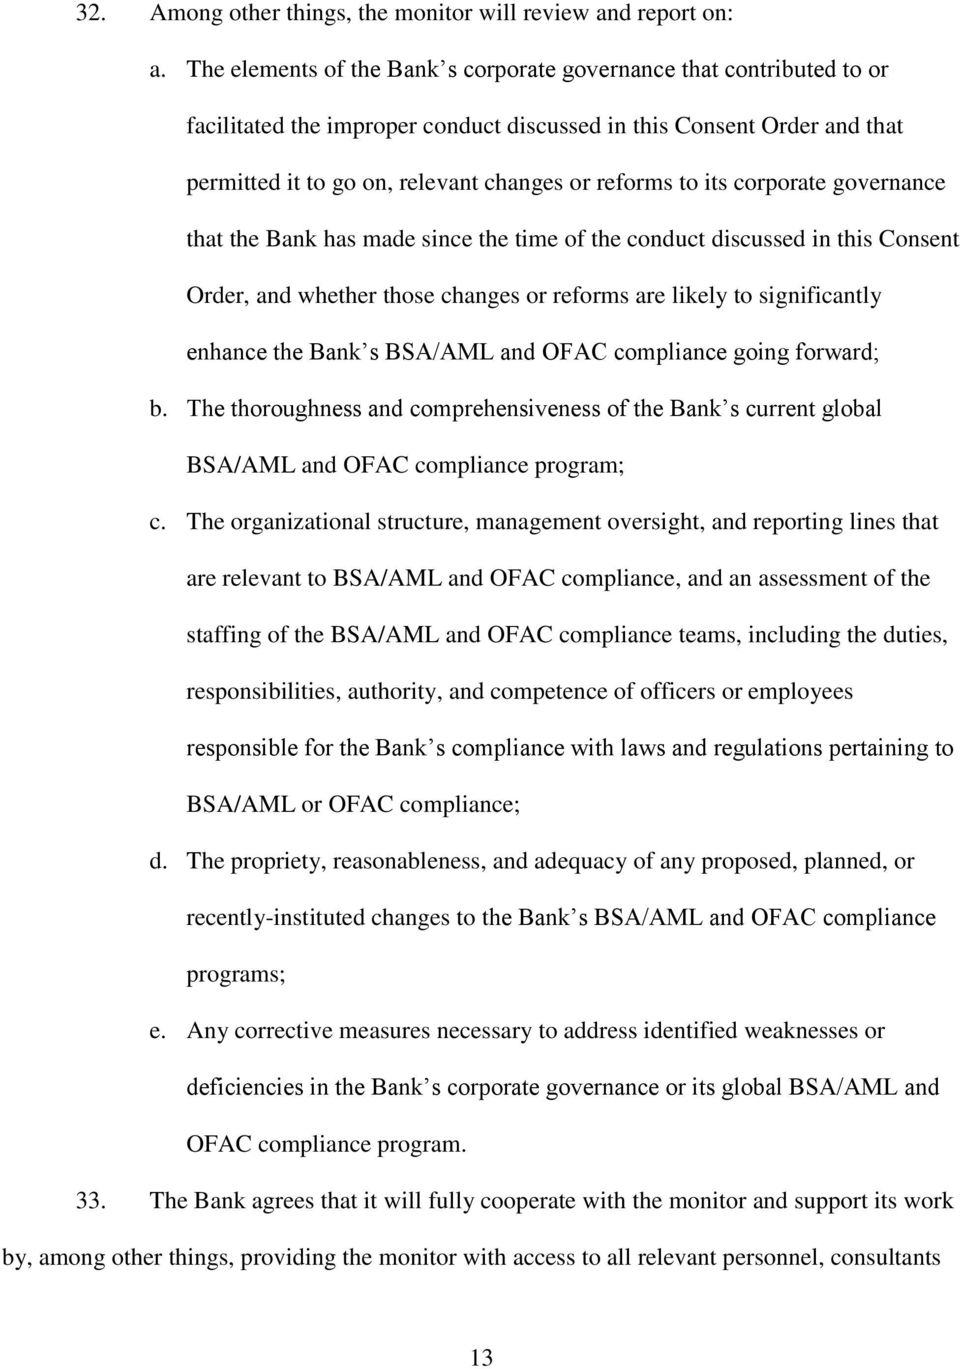 CONSENT ORDER UNDER NEW YORK BANKING LAW 39 and 44  The New